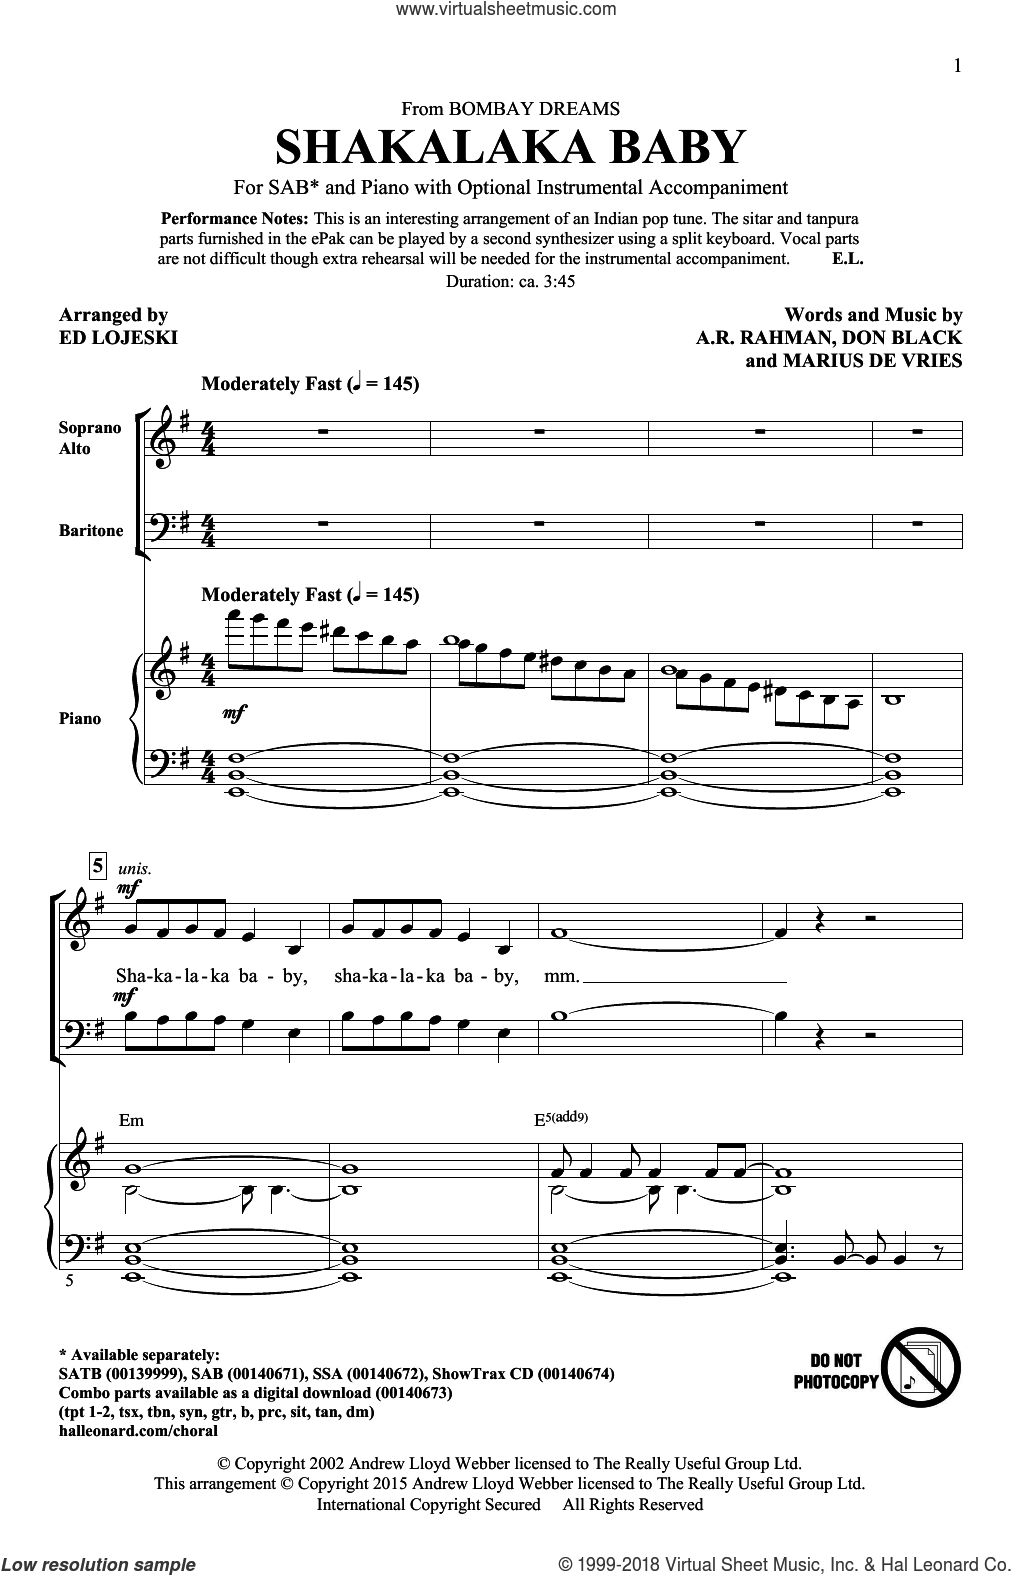 Shakalaka Baby (from Bombay Dreams) sheet music for choir (SAB: soprano, alto, bass) by Don Black, Ed Lojeski, A.R. Rahman and Marius De Vries, intermediate skill level